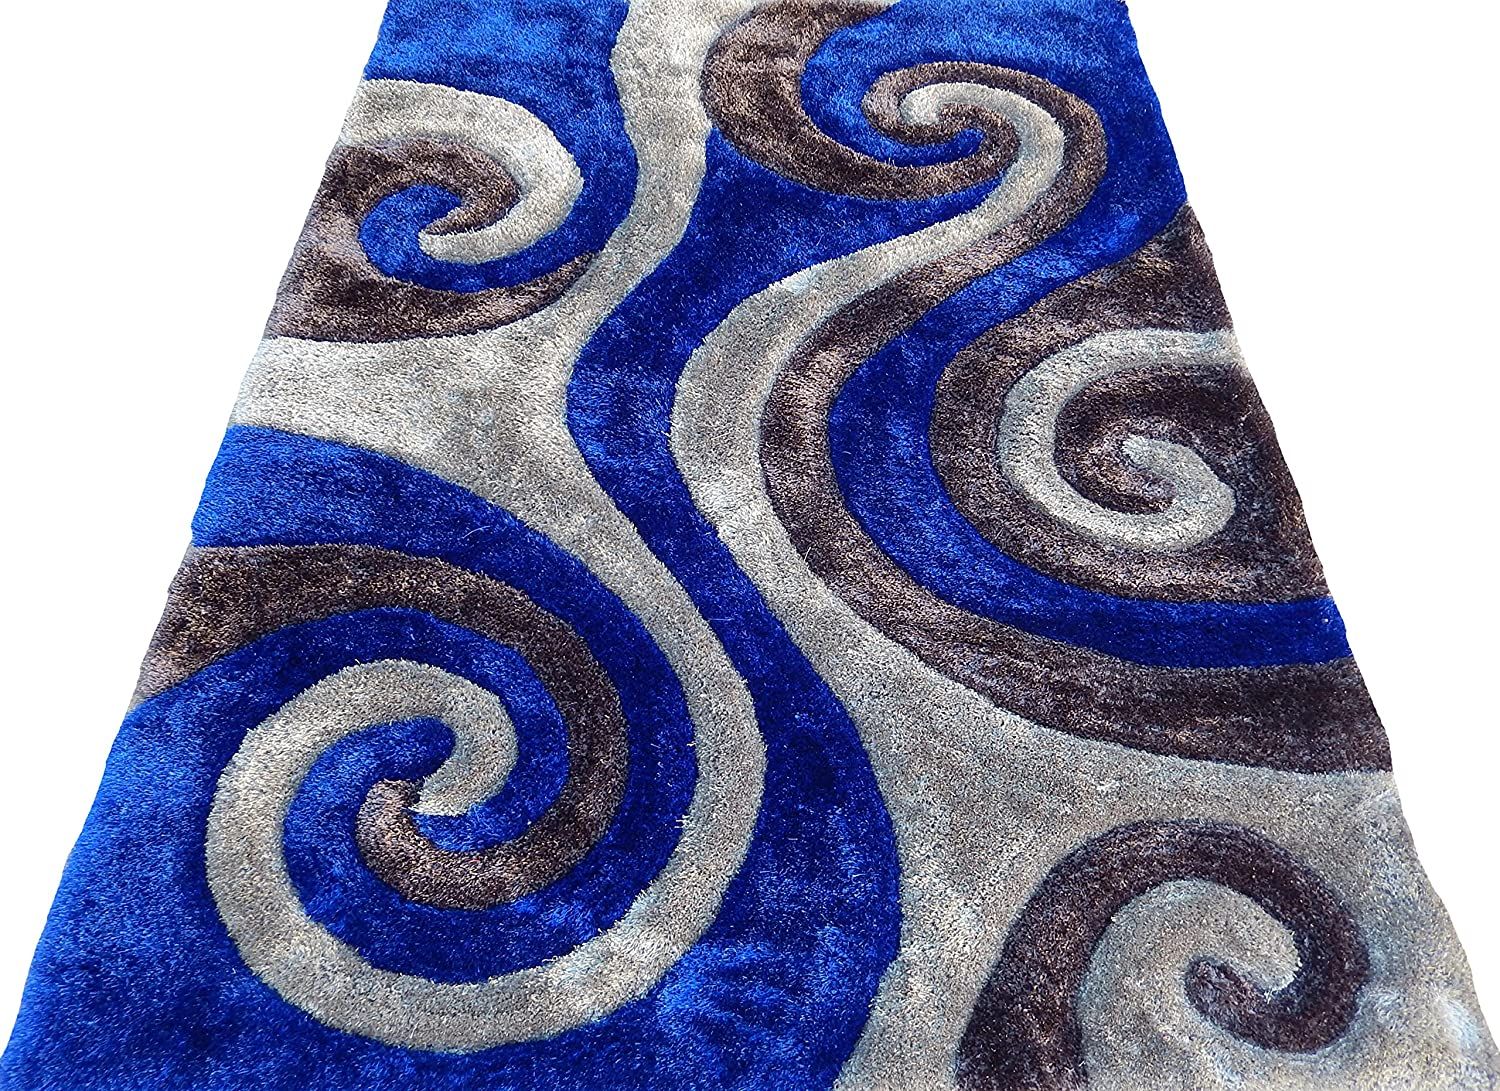 buy cheap rugs australia blue shag free rug ice rugtastic shaggy collections tanya online delivery melbourne large royal